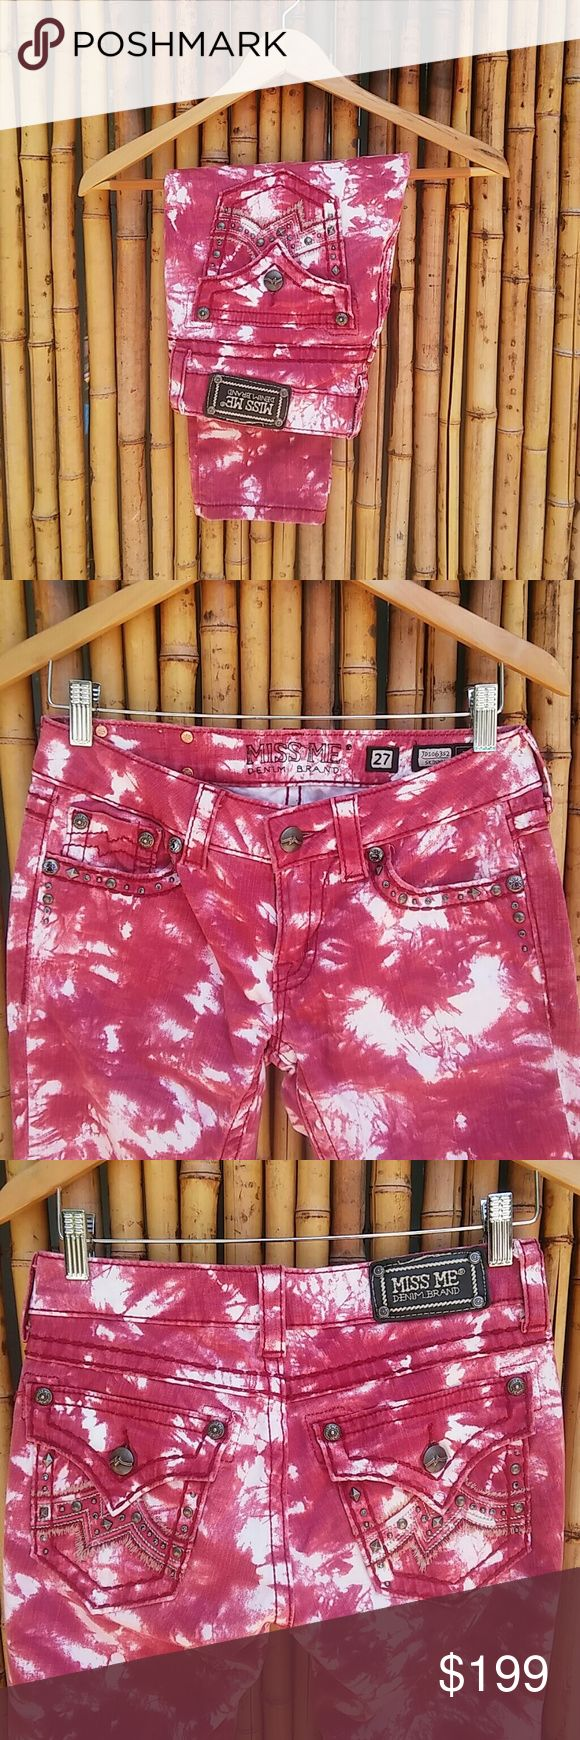 MISS ME • Red&White Skinny Jeans! 💗HP💗 Take your jeans to a new level with these Miss Me Brand red tie dyed skinnies! They also have the most wanted flap pocket at rear as well as studded pocket trim! Go ahead make a statement and stand out in the crowd!   🚫No Trades🙄😘  ✔PRICE IS FIRM😗 🔘Please Ask ❓'s BEFORE you Buy🤔😃 💕Thank you for stopping by! Happy Poshing!💕 Miss Me Jeans Skinny